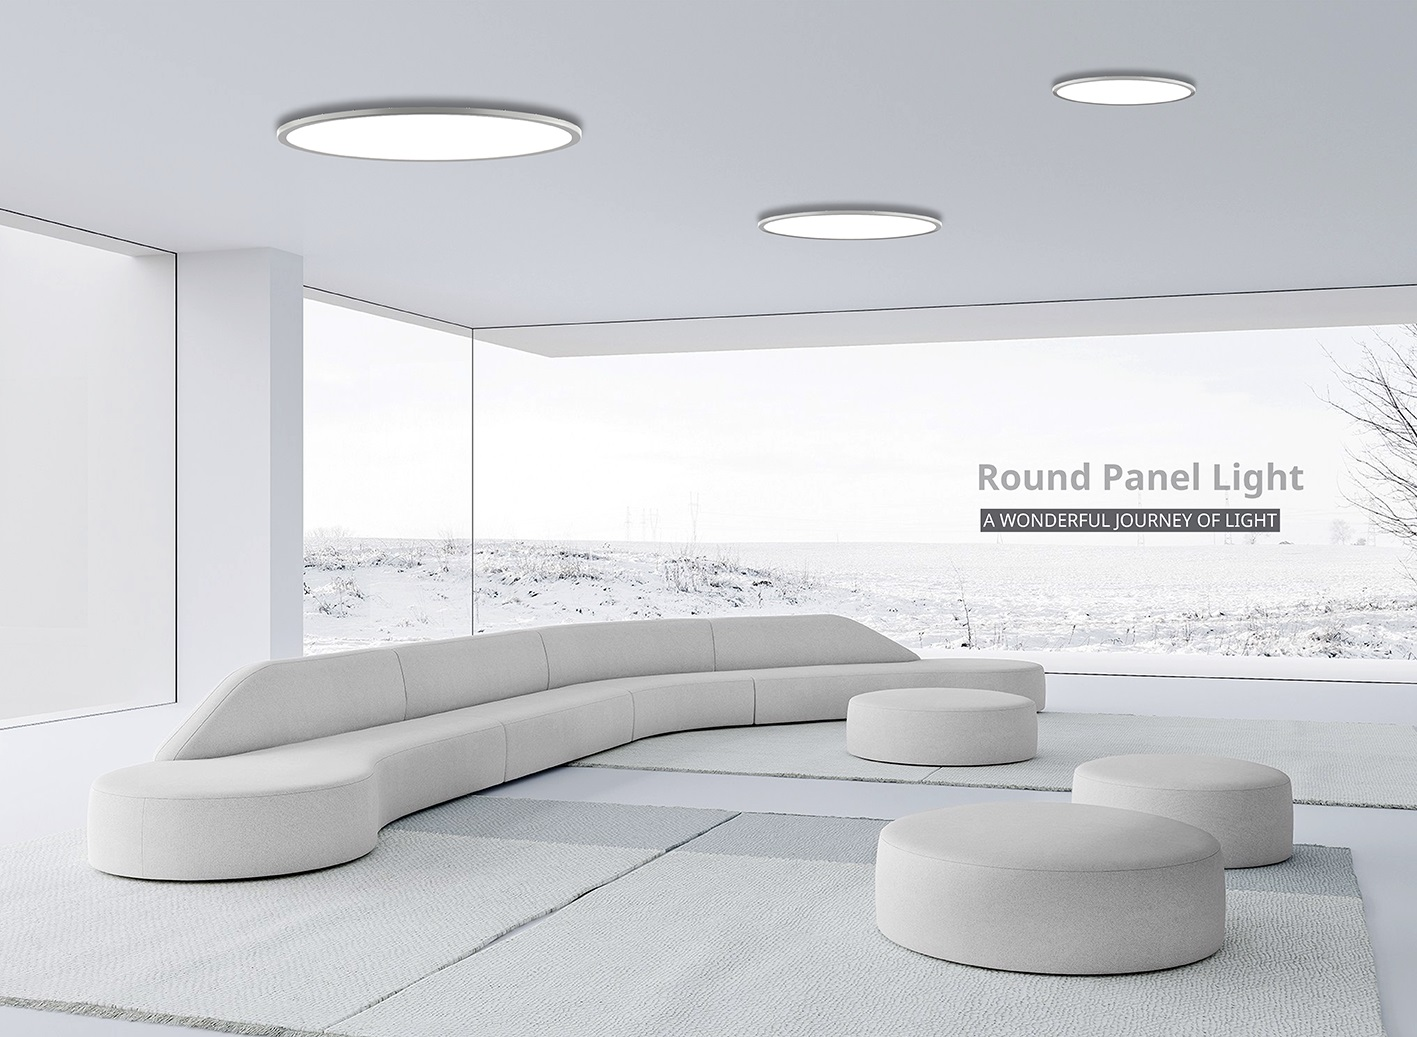 Inlity led panel light round with low price surface round panel light for the office